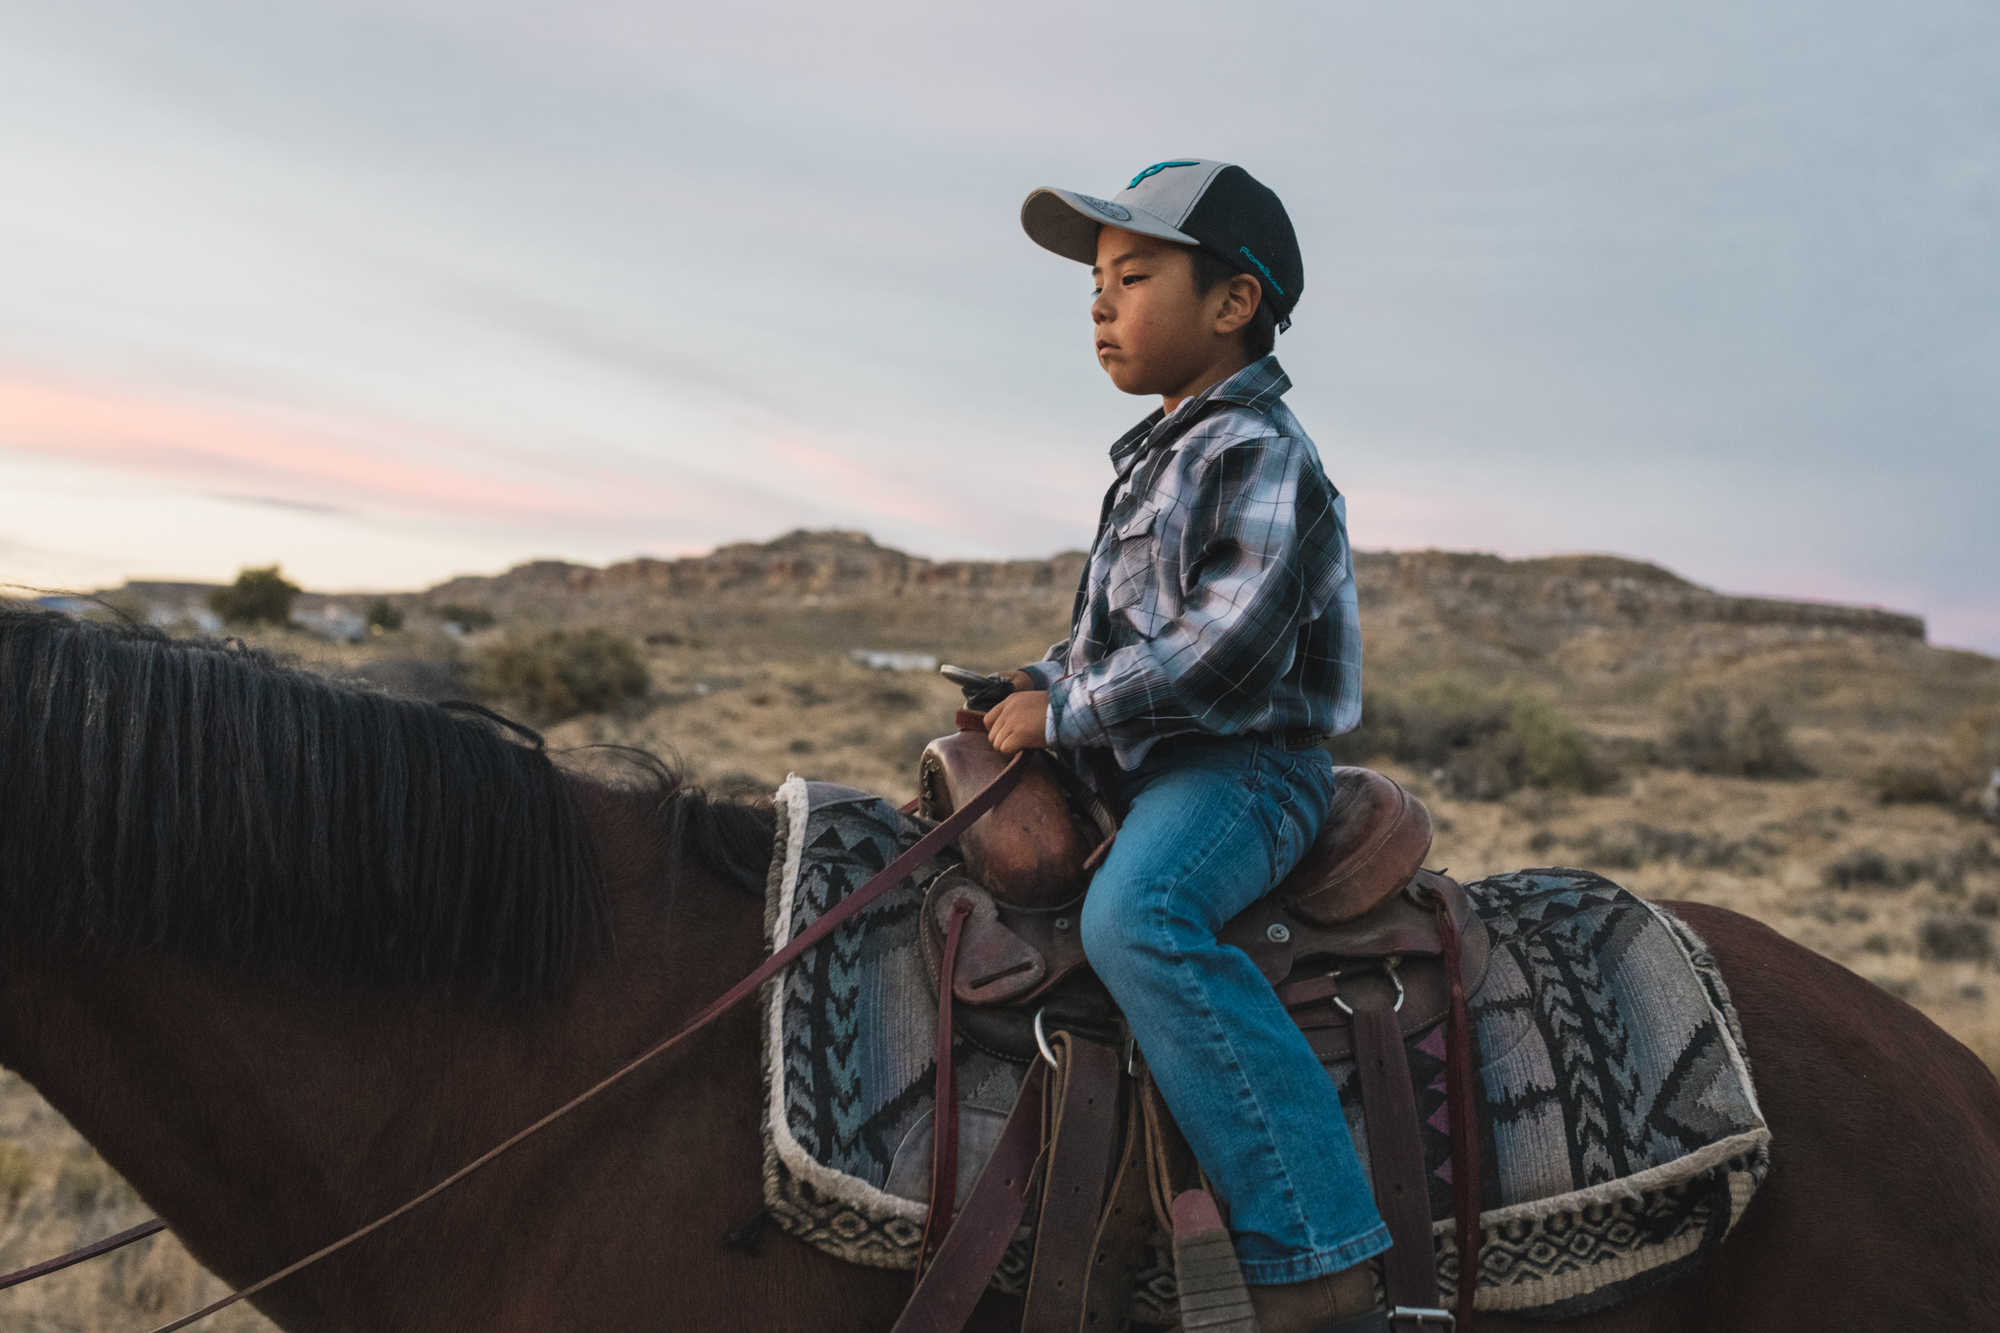 In the soft purple of twilight, the boy is dwarfed by the horse, the darkening sky. But he is not afraid; his family walks beside him. -